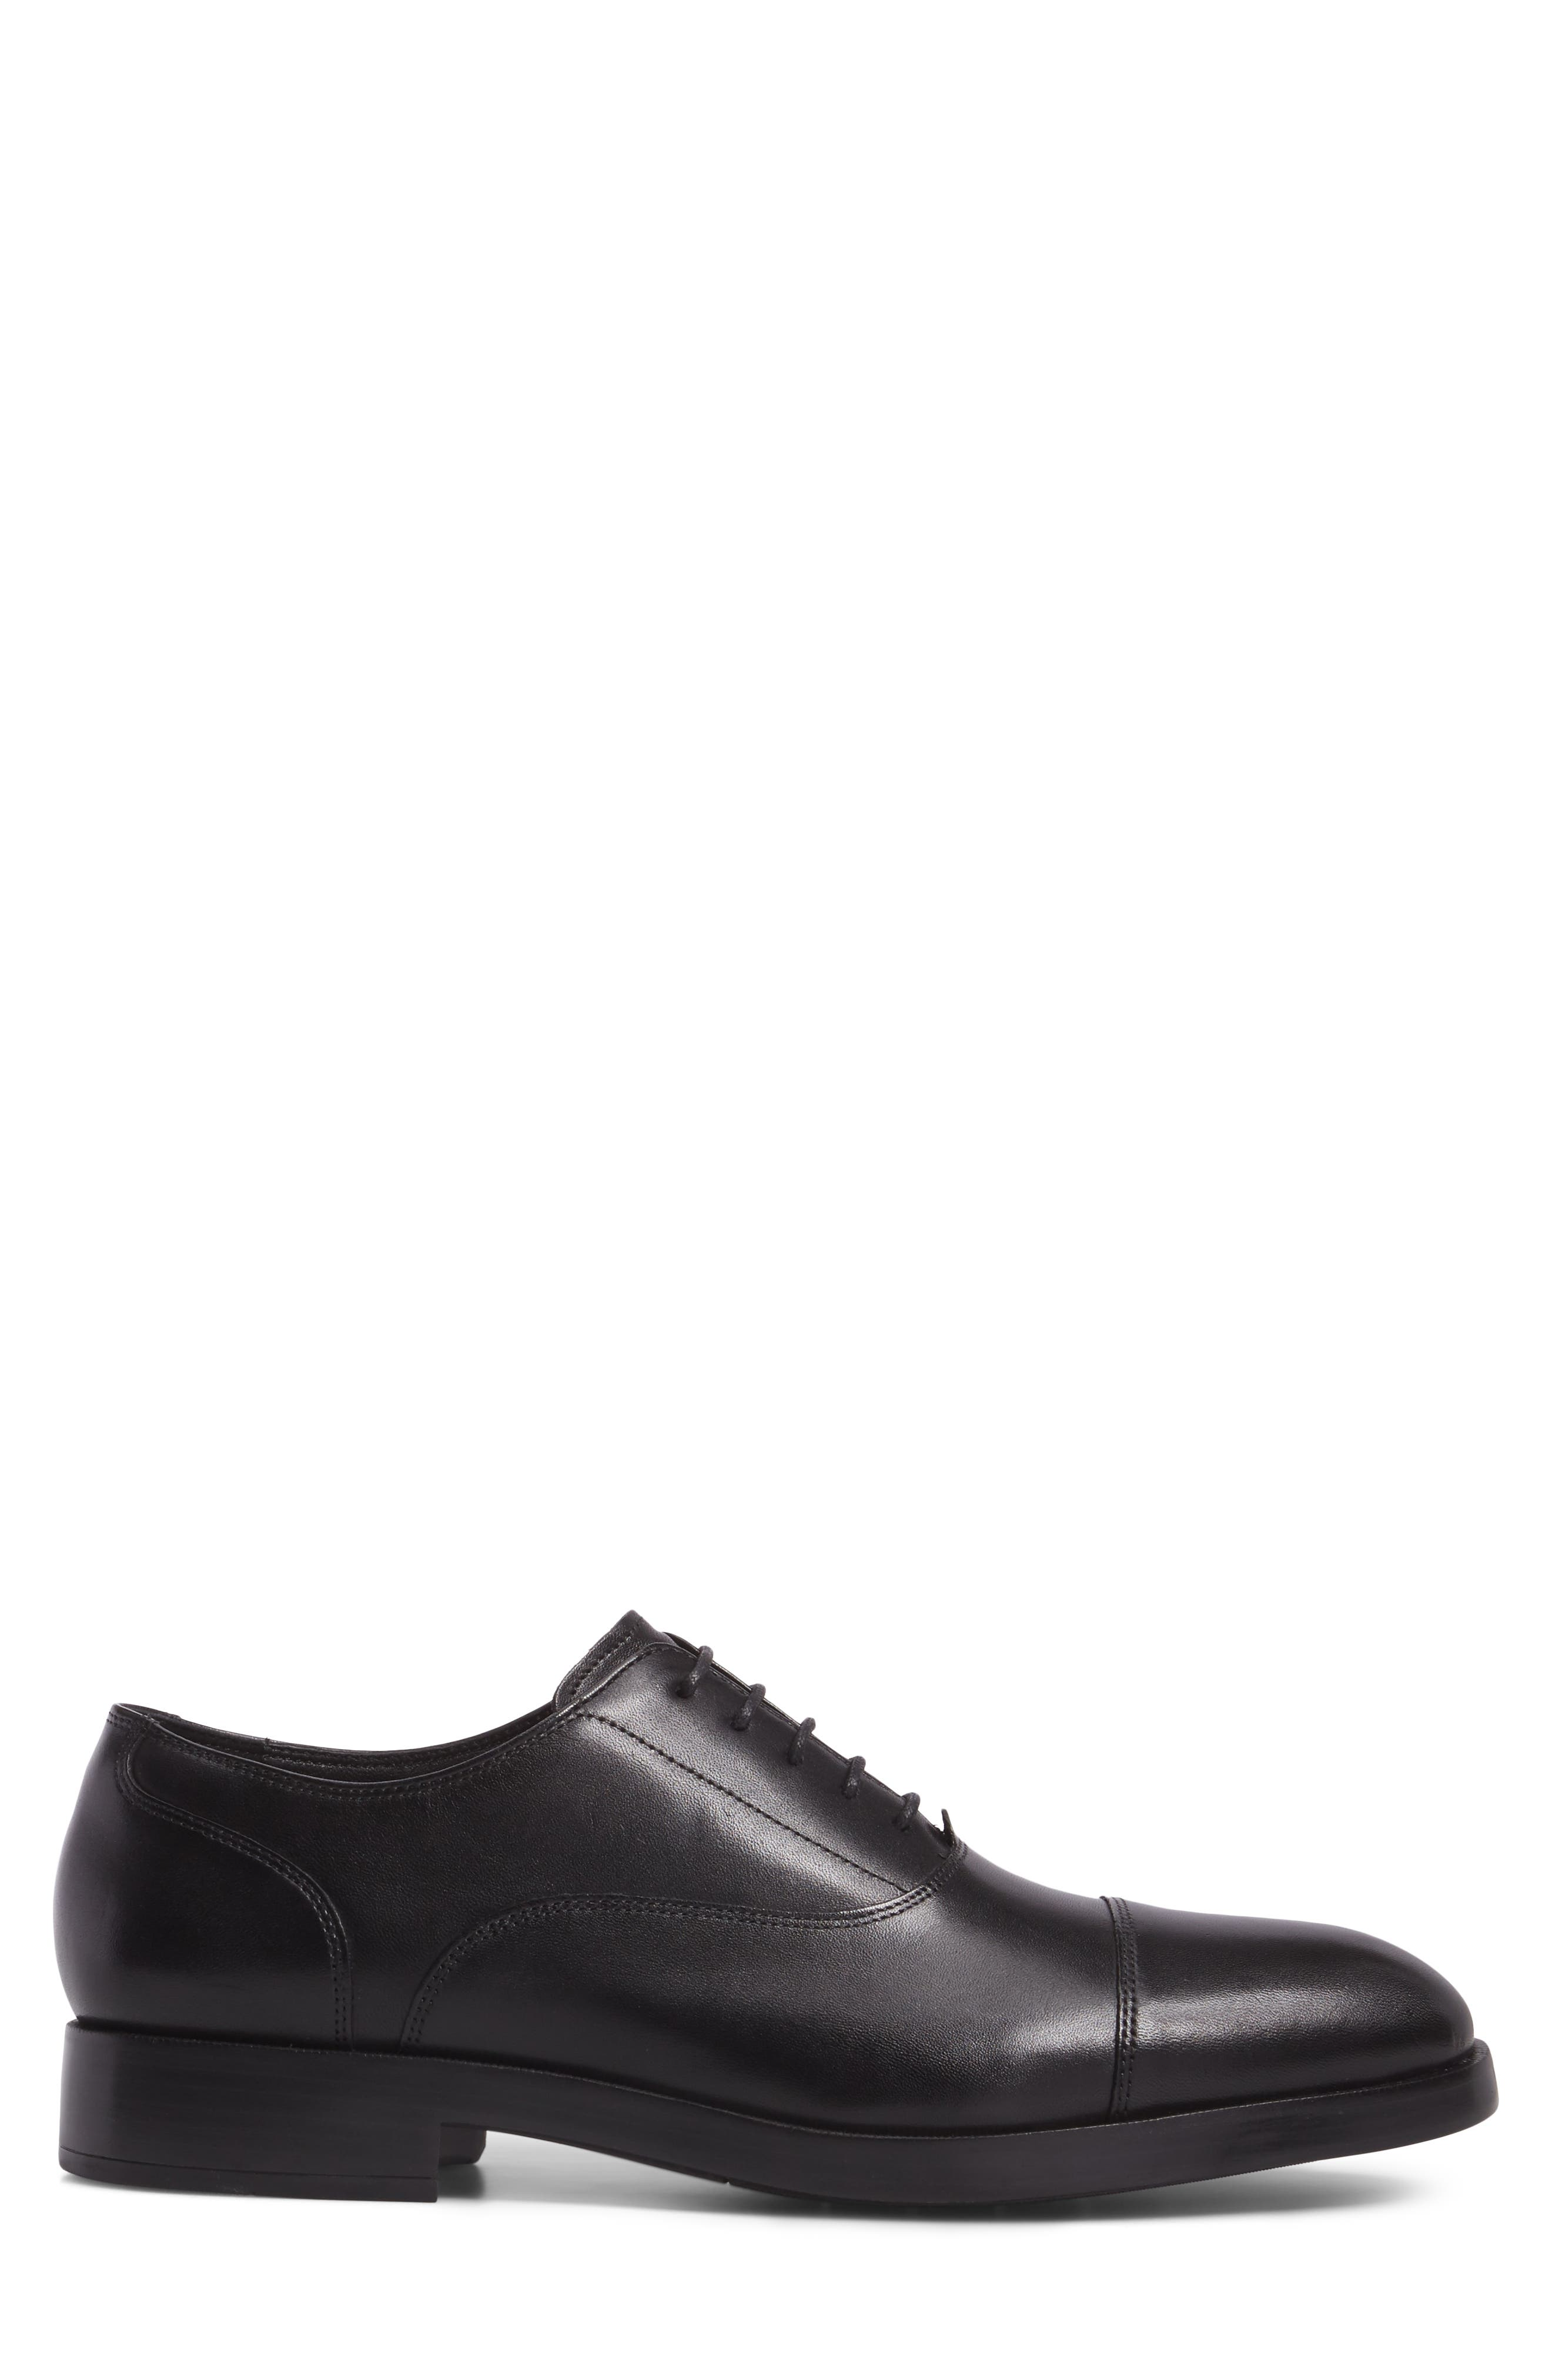 COLE HAAN, Harrison Grand Cap Toe Oxford, Alternate thumbnail 3, color, BLACK/ BLACK LEATHER